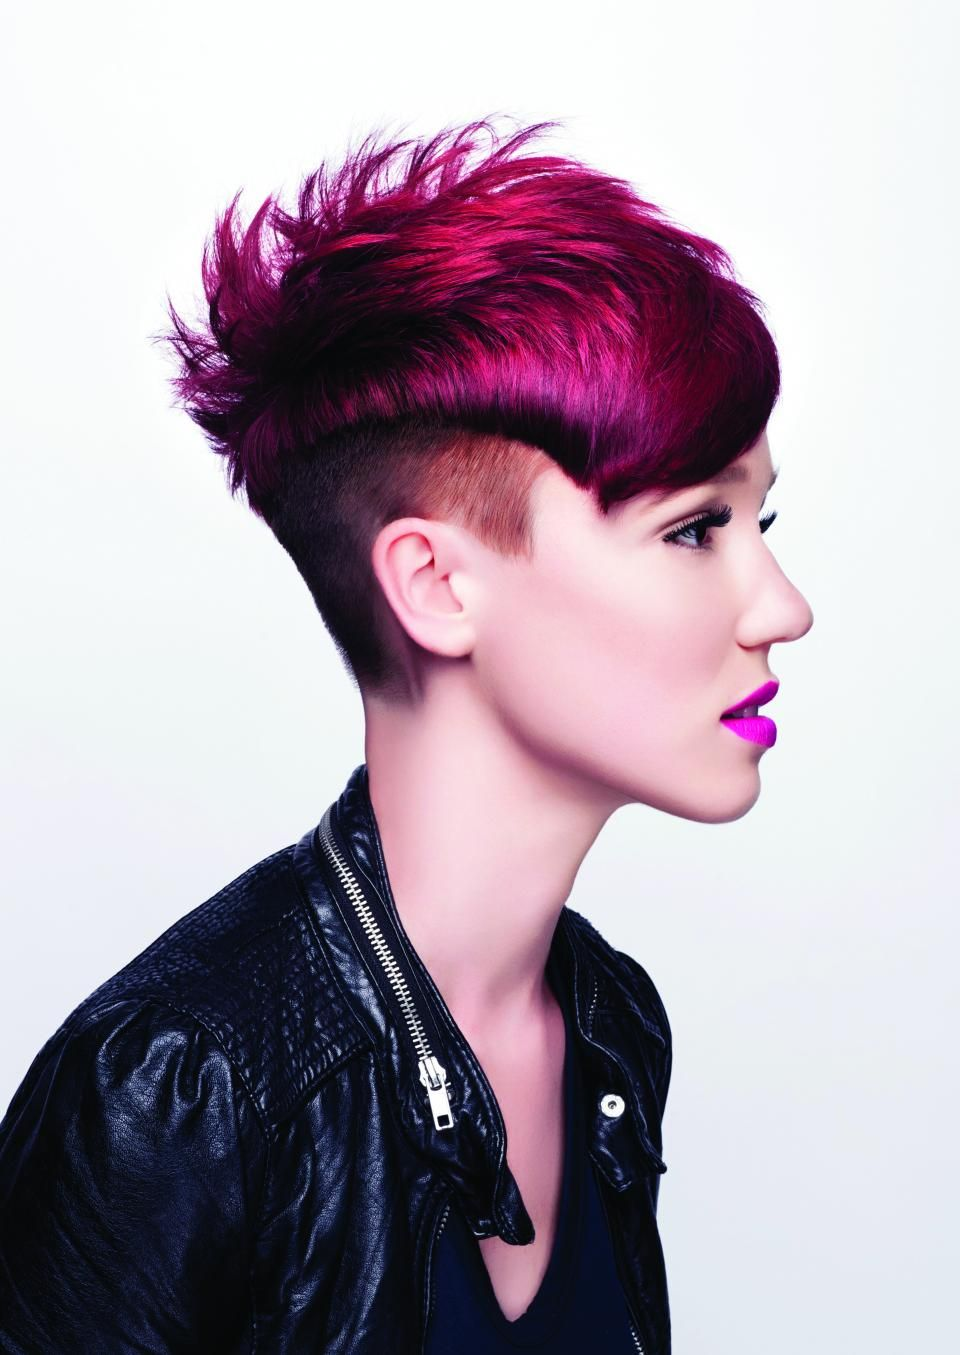 Hair icons inspiration garys benfield and creative